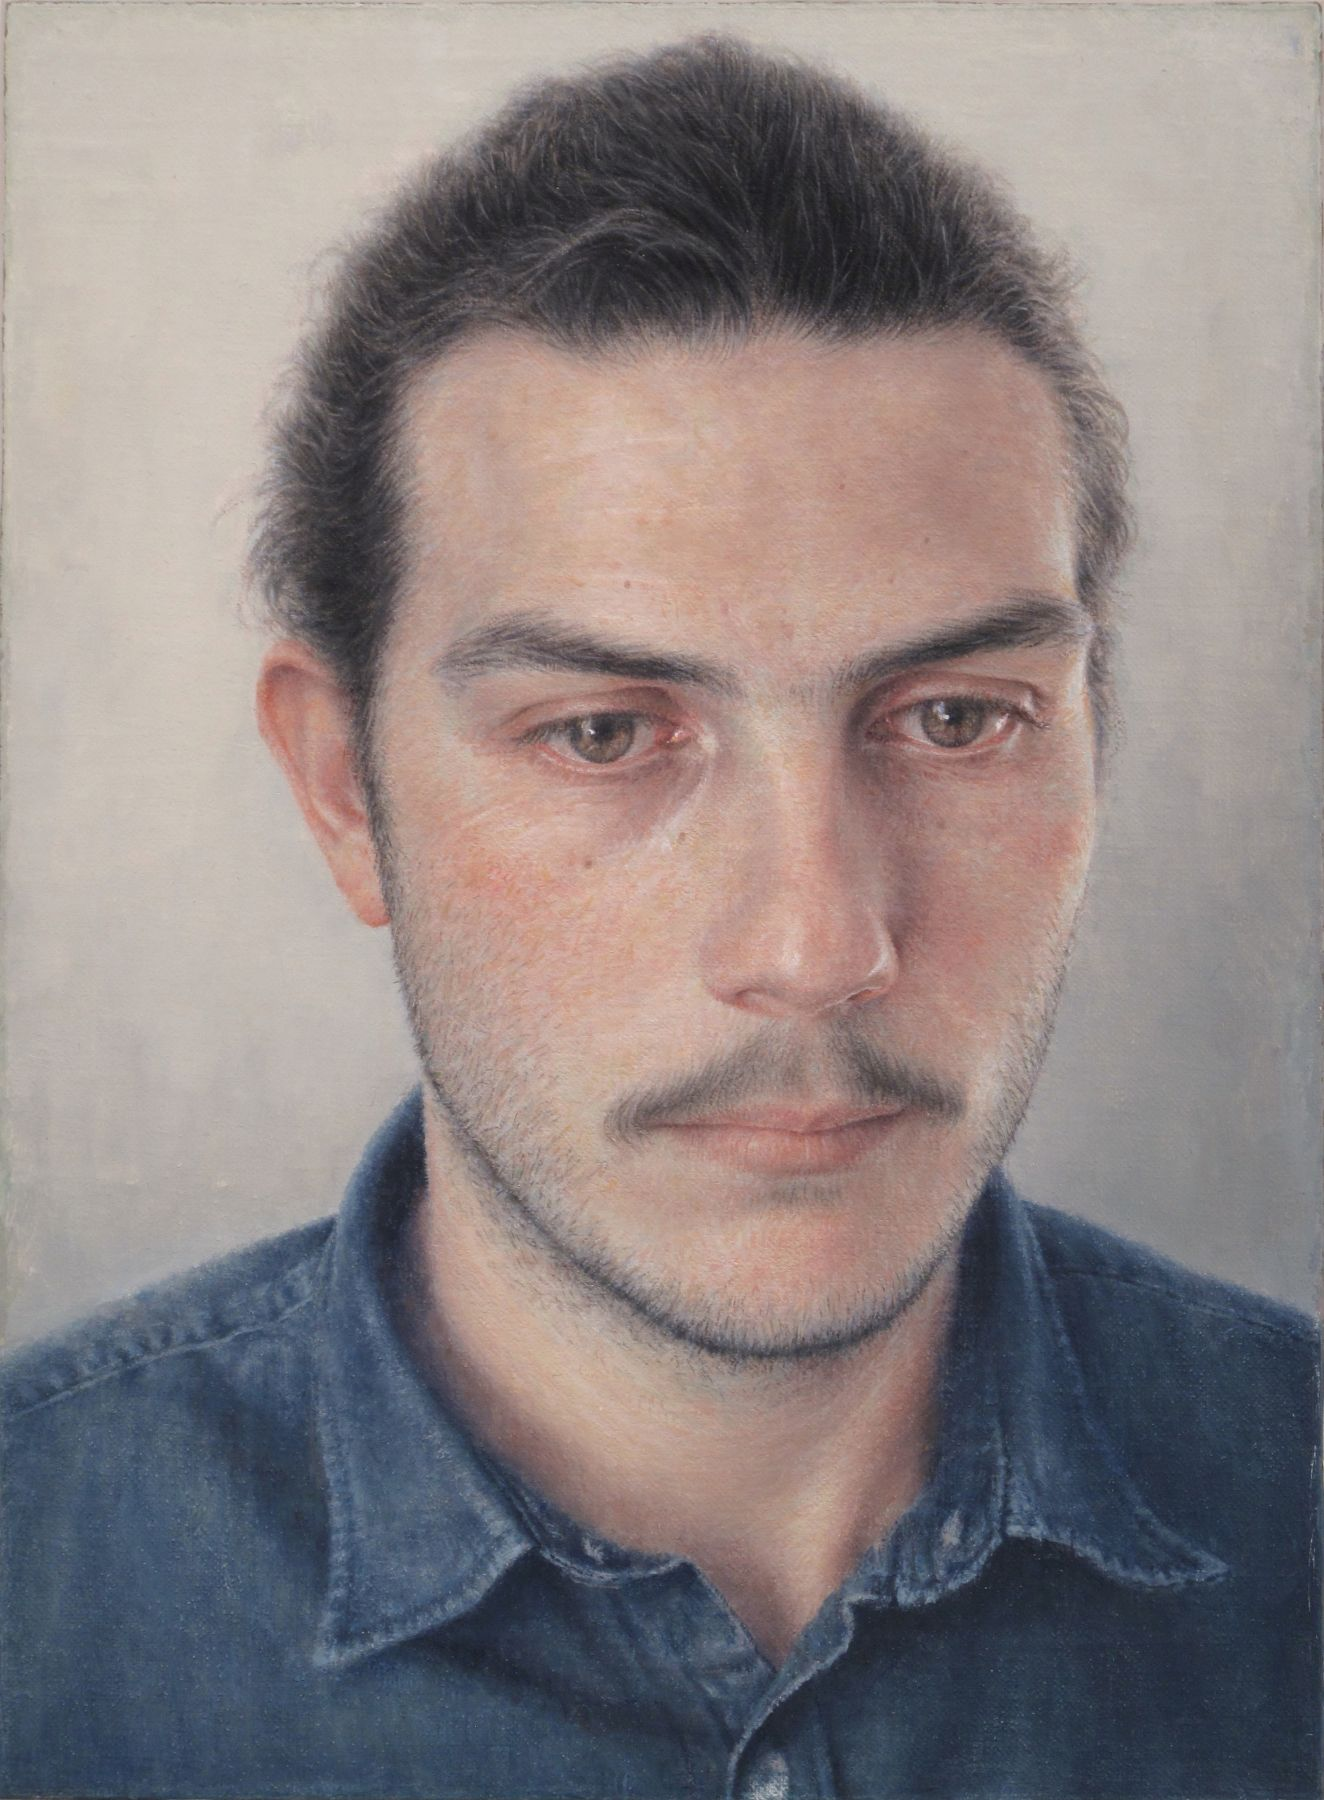 Robert Bauer, Anthony (SOLD), 2015, oil on canvas, mounted on wood, 8 3/8 x 6 1/8 inches